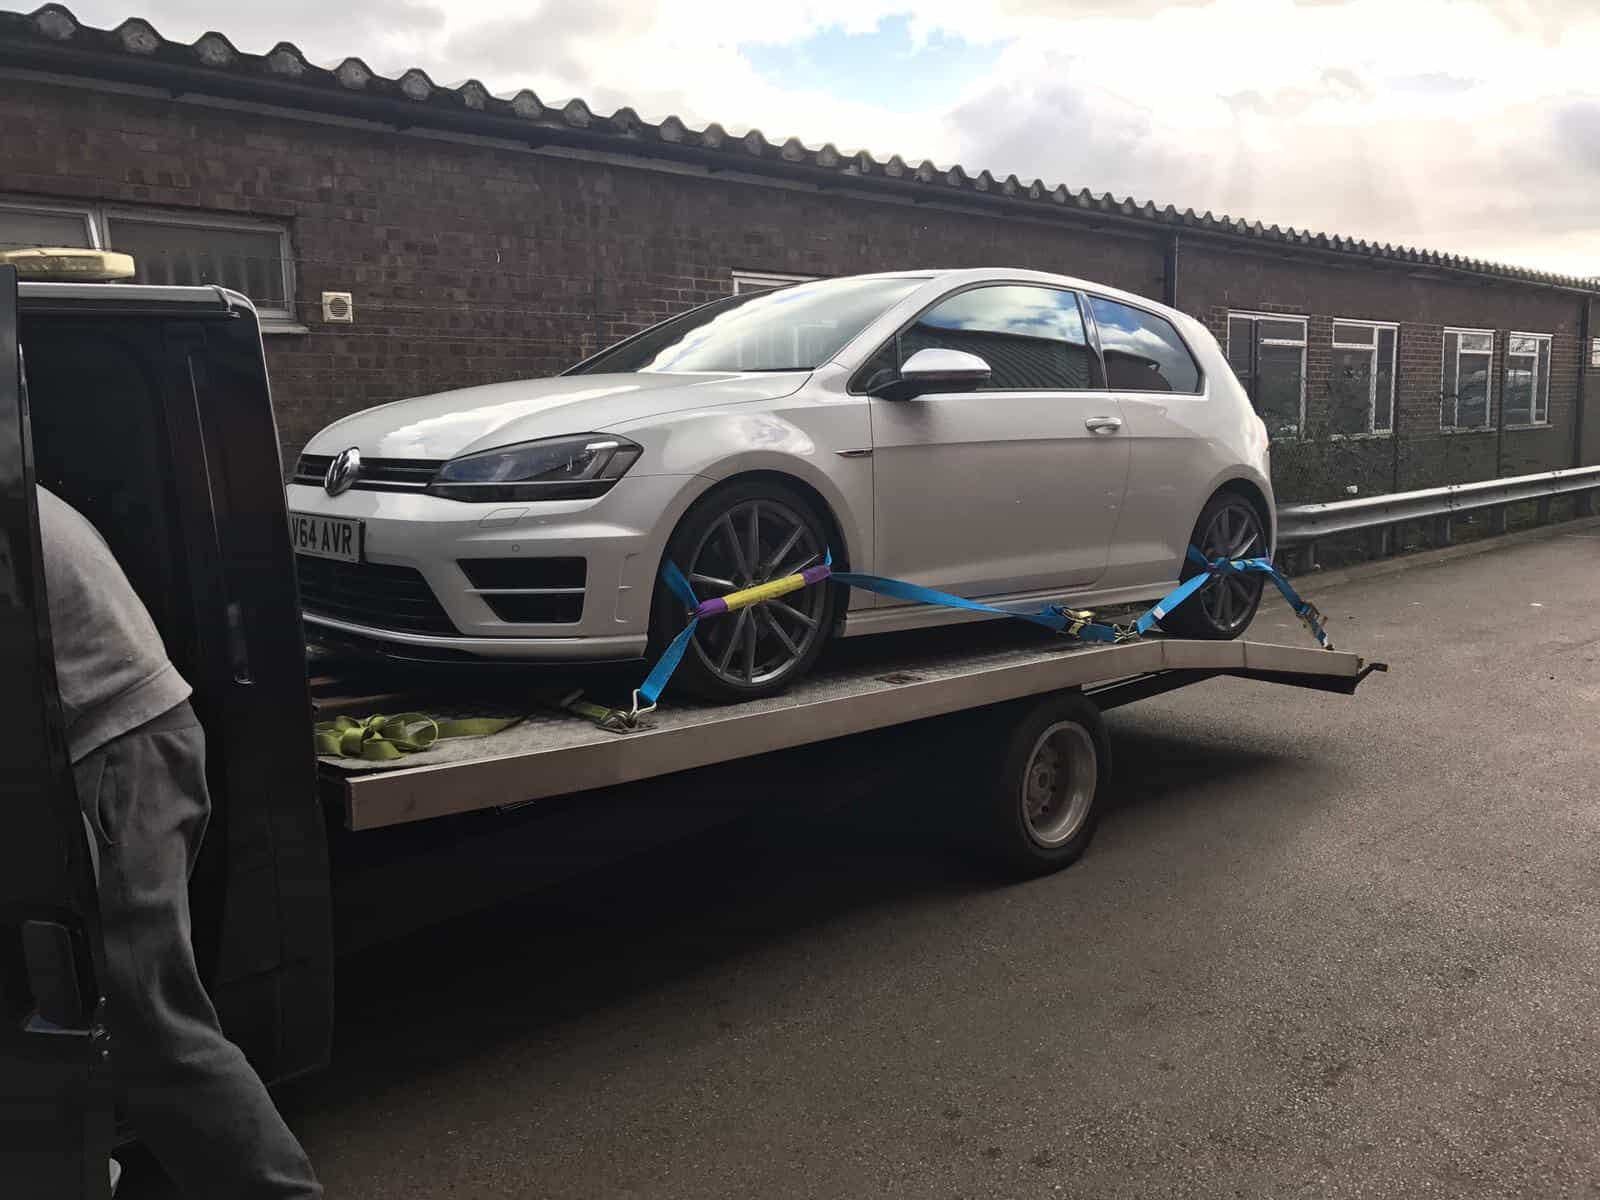 Car Recovery Services in Wokingham 1